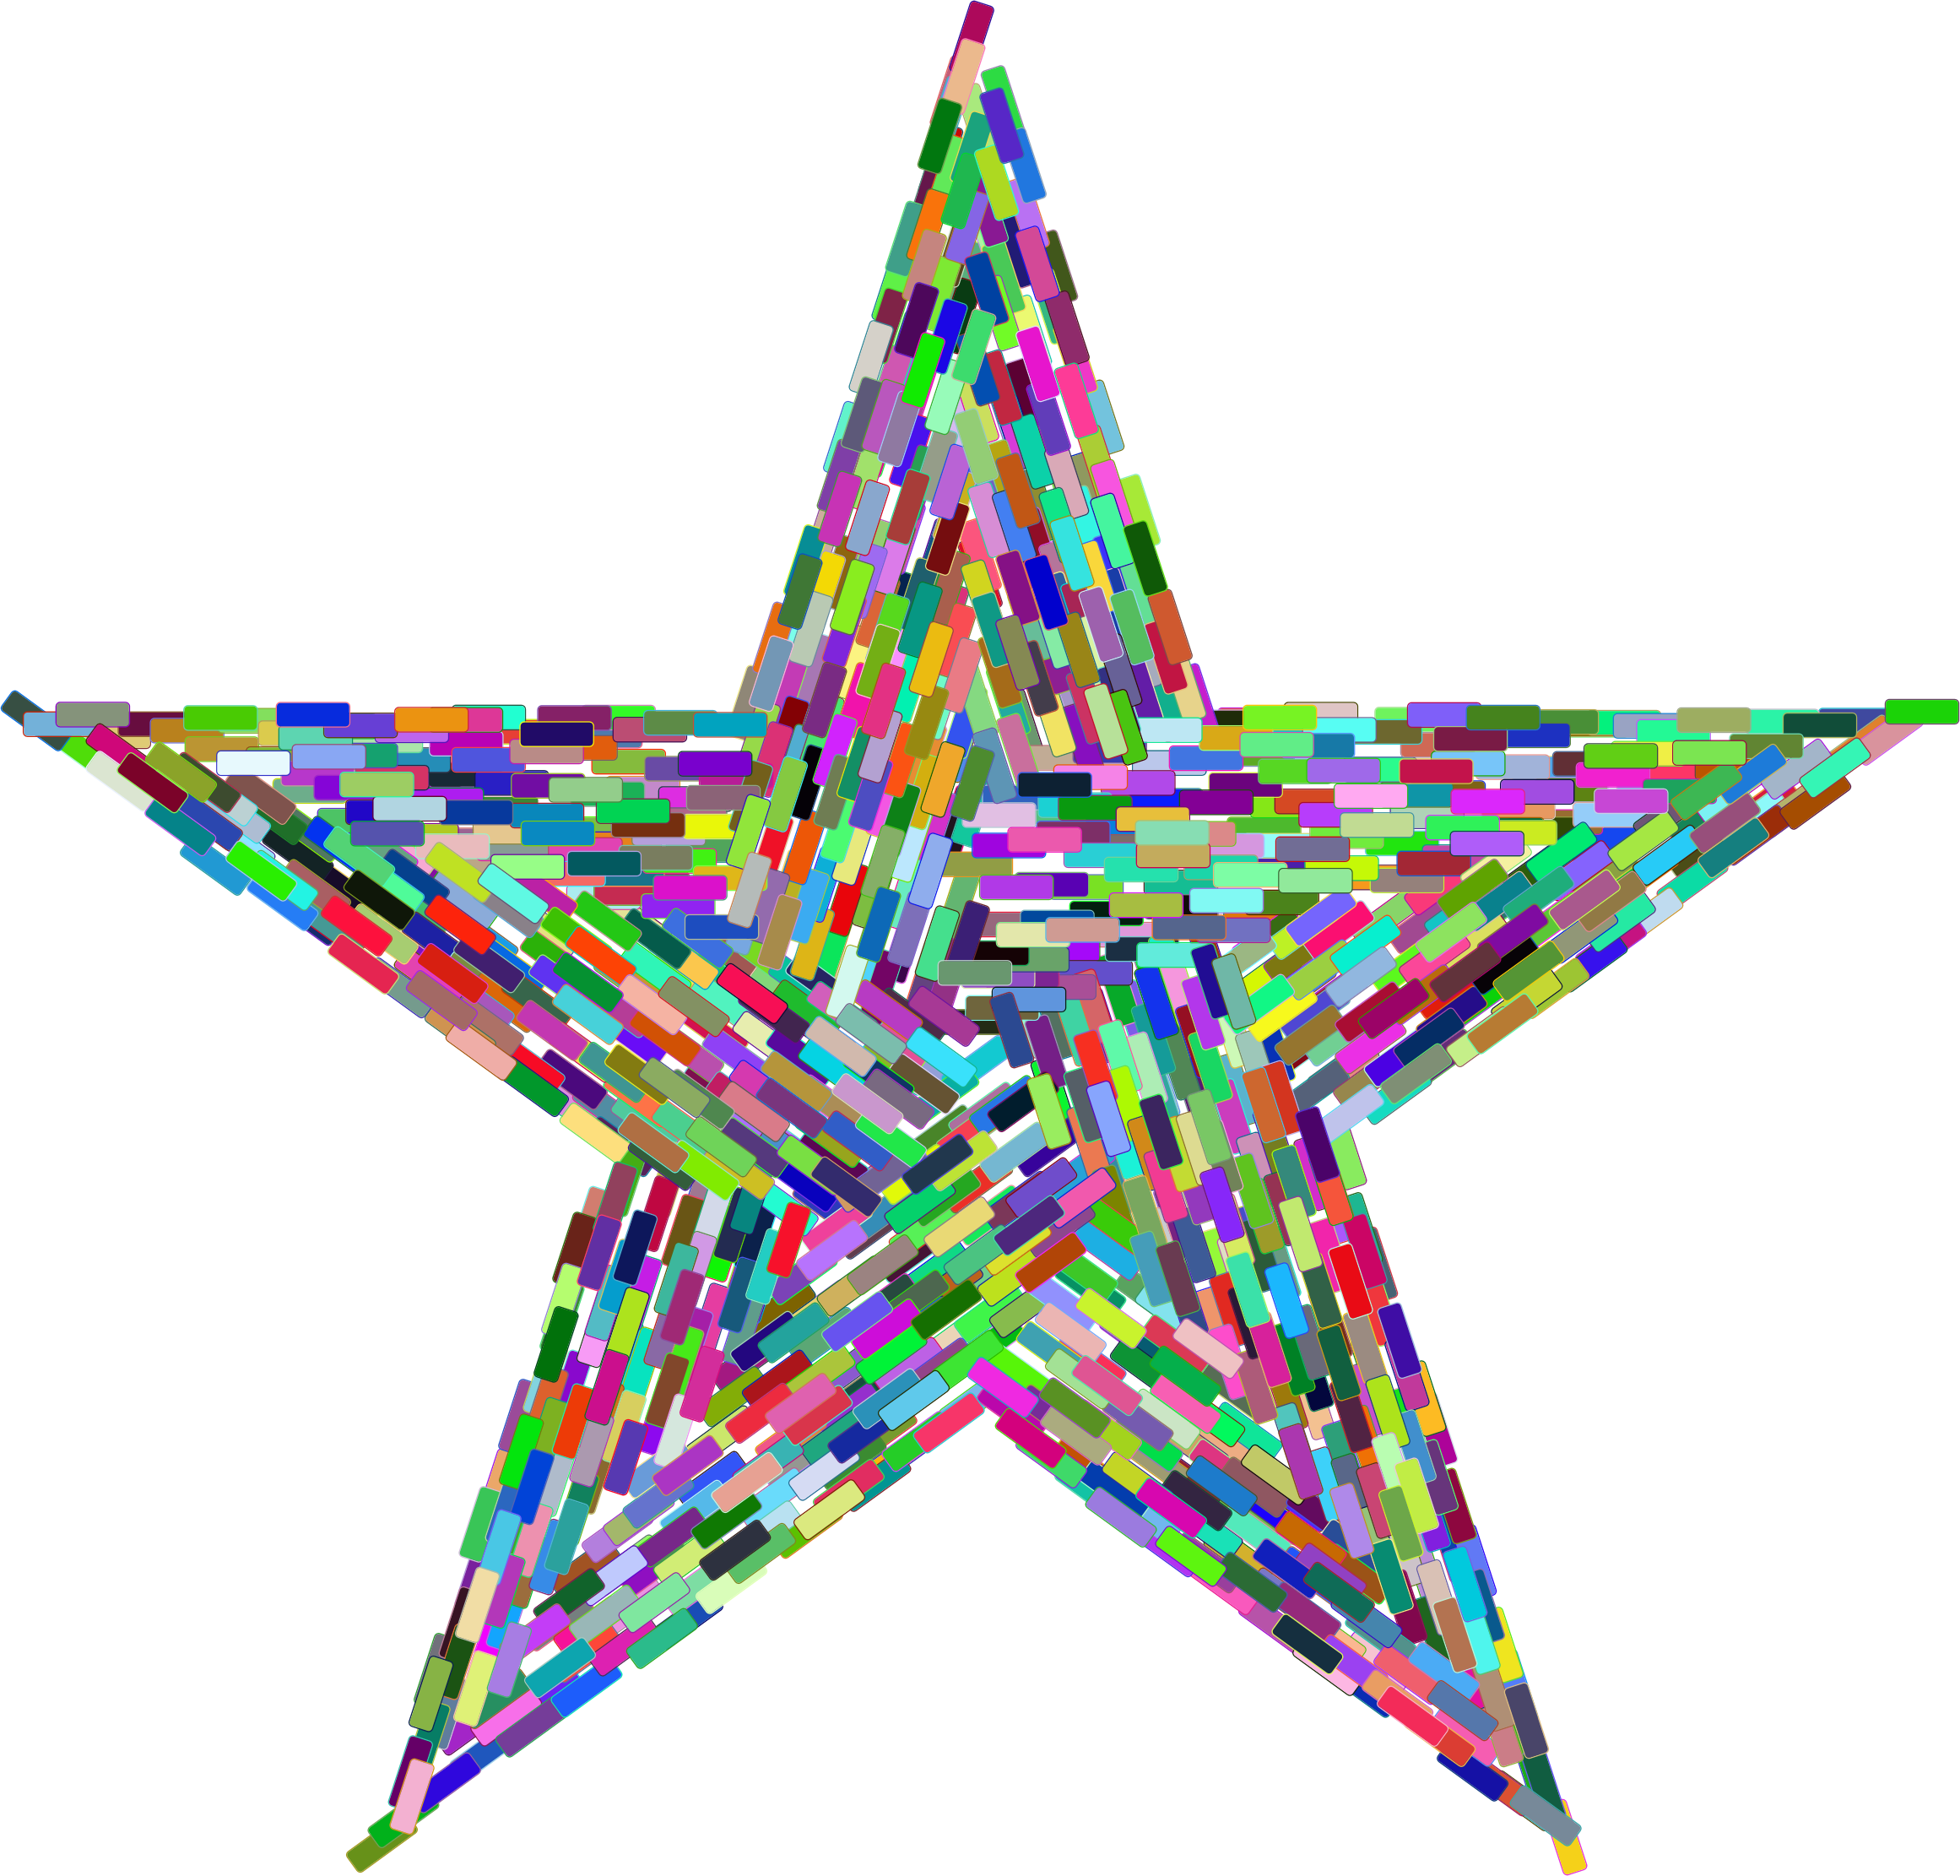 Prismatic Rectangular Star by GDJ